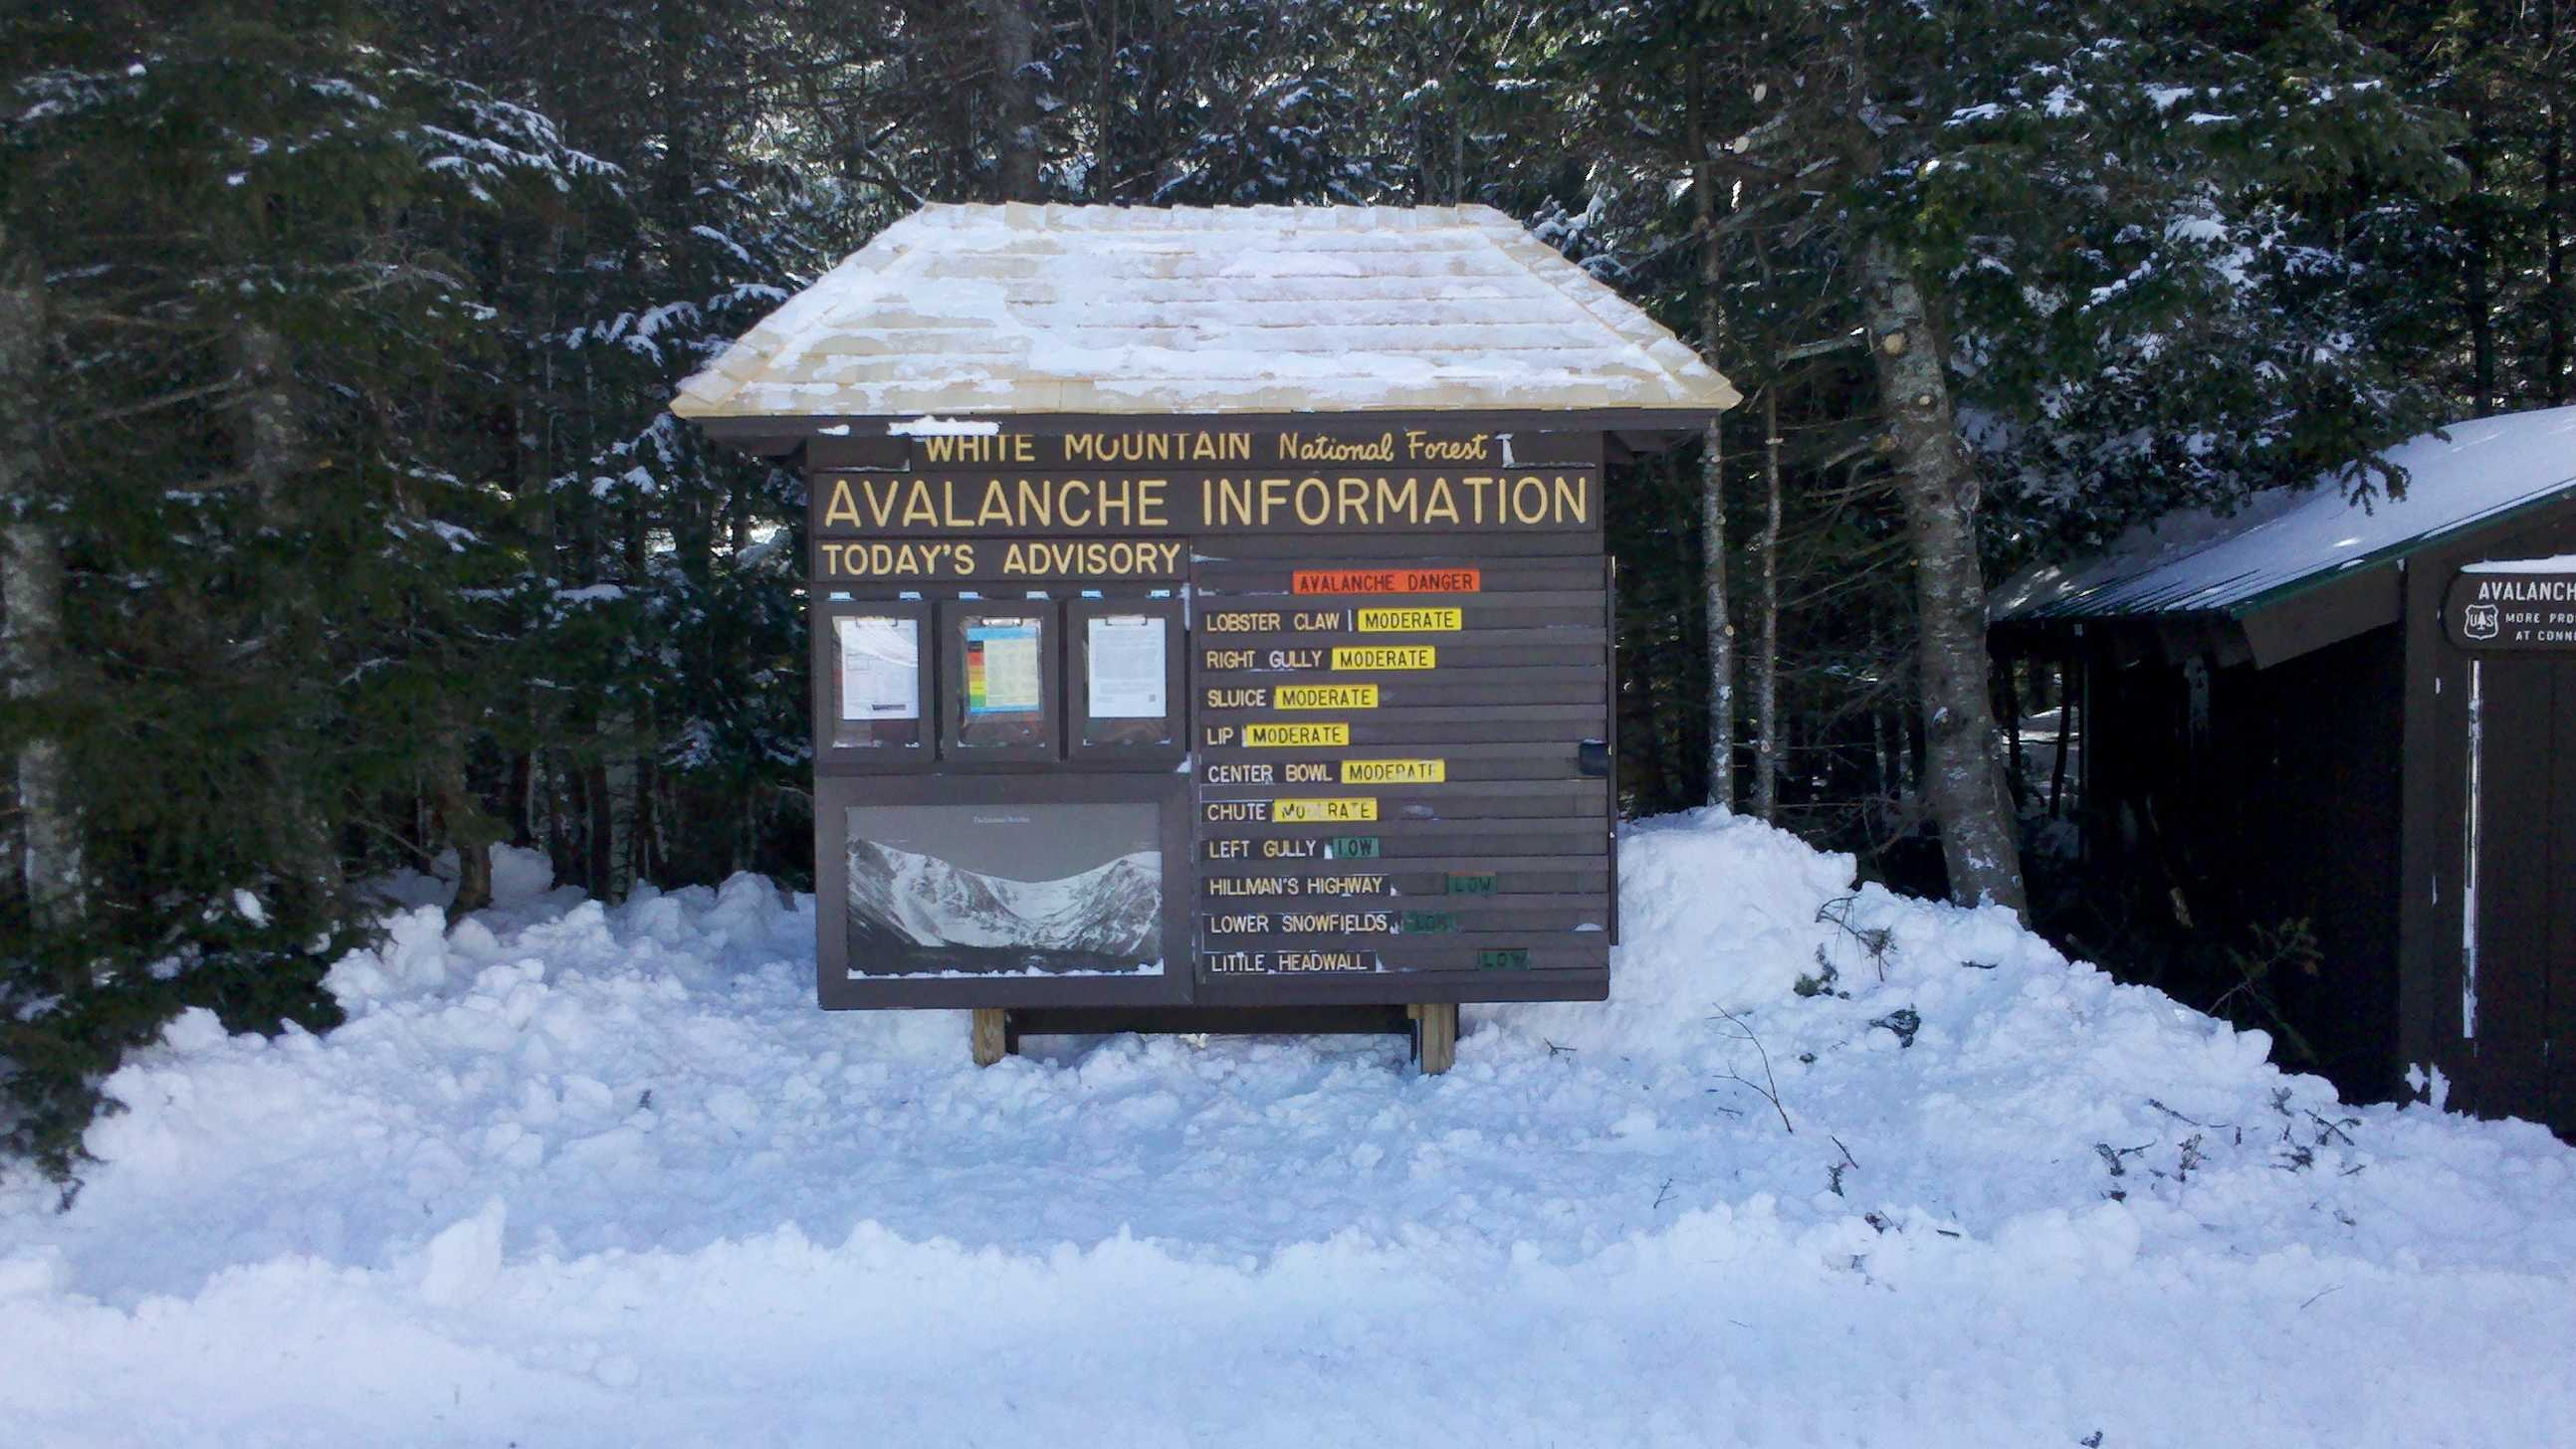 Last year's proceeds from Tuckerman Inferno adventure race helped fund this sign.